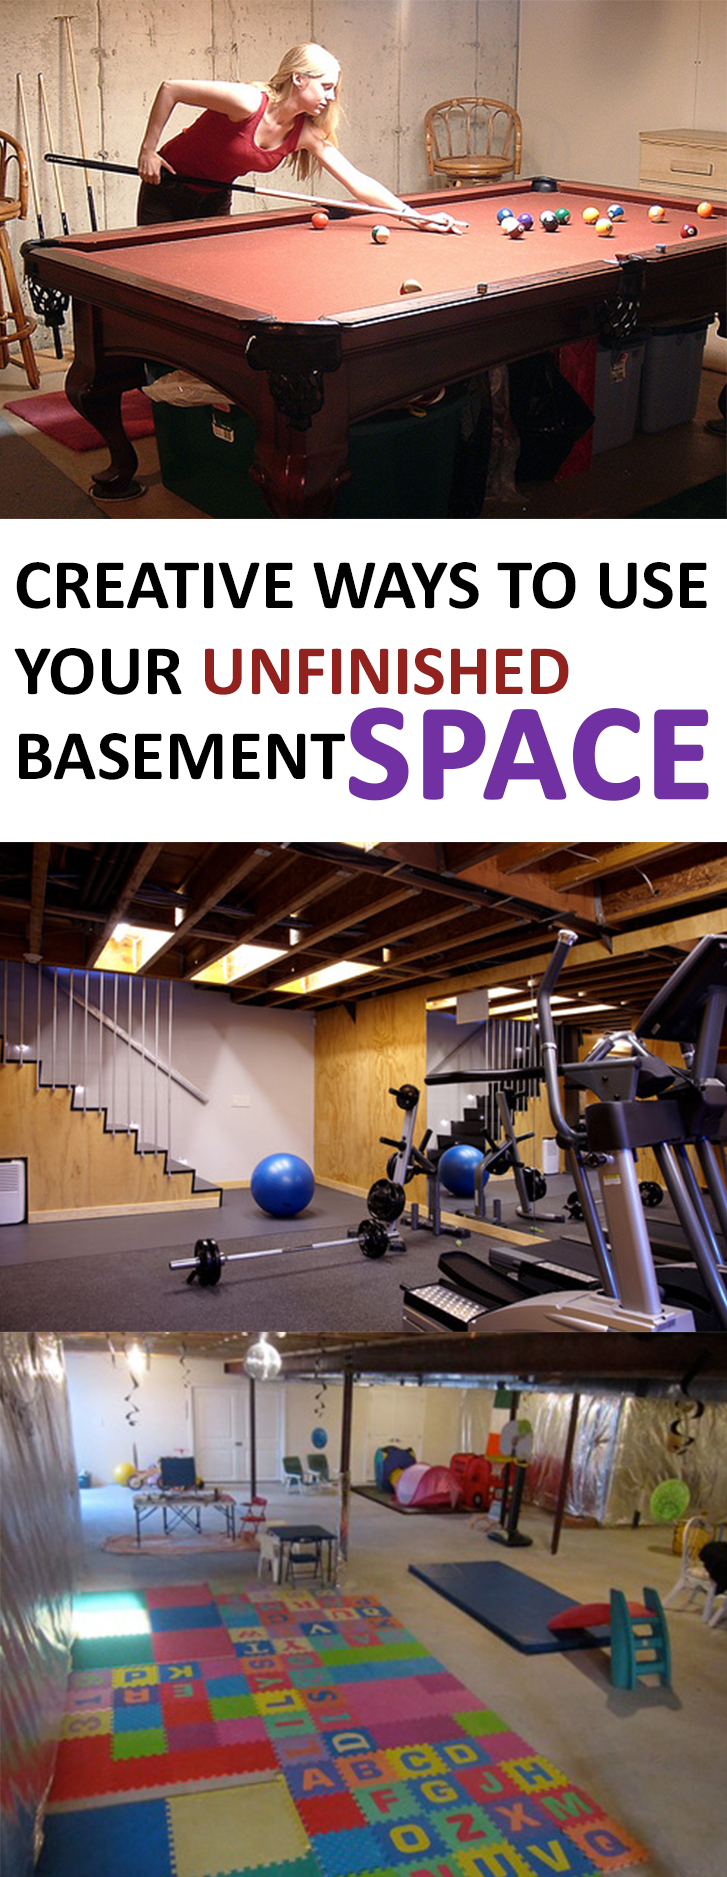 creative ways to use your unfinished basement space